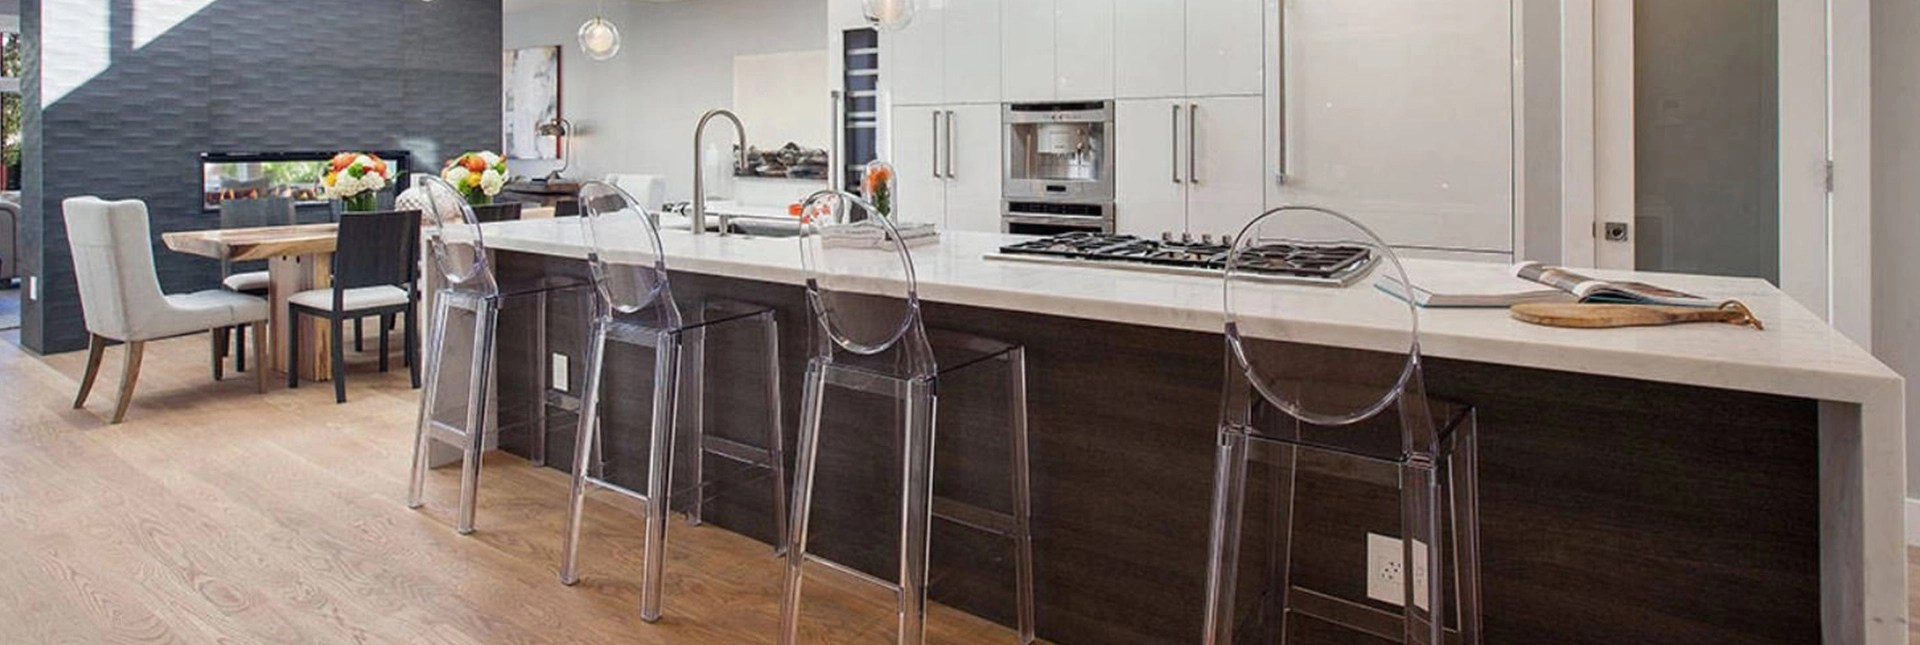 Kitchen Counter And Stools Dining Bar Stools 2xhome Modern And Contemporary Furniture